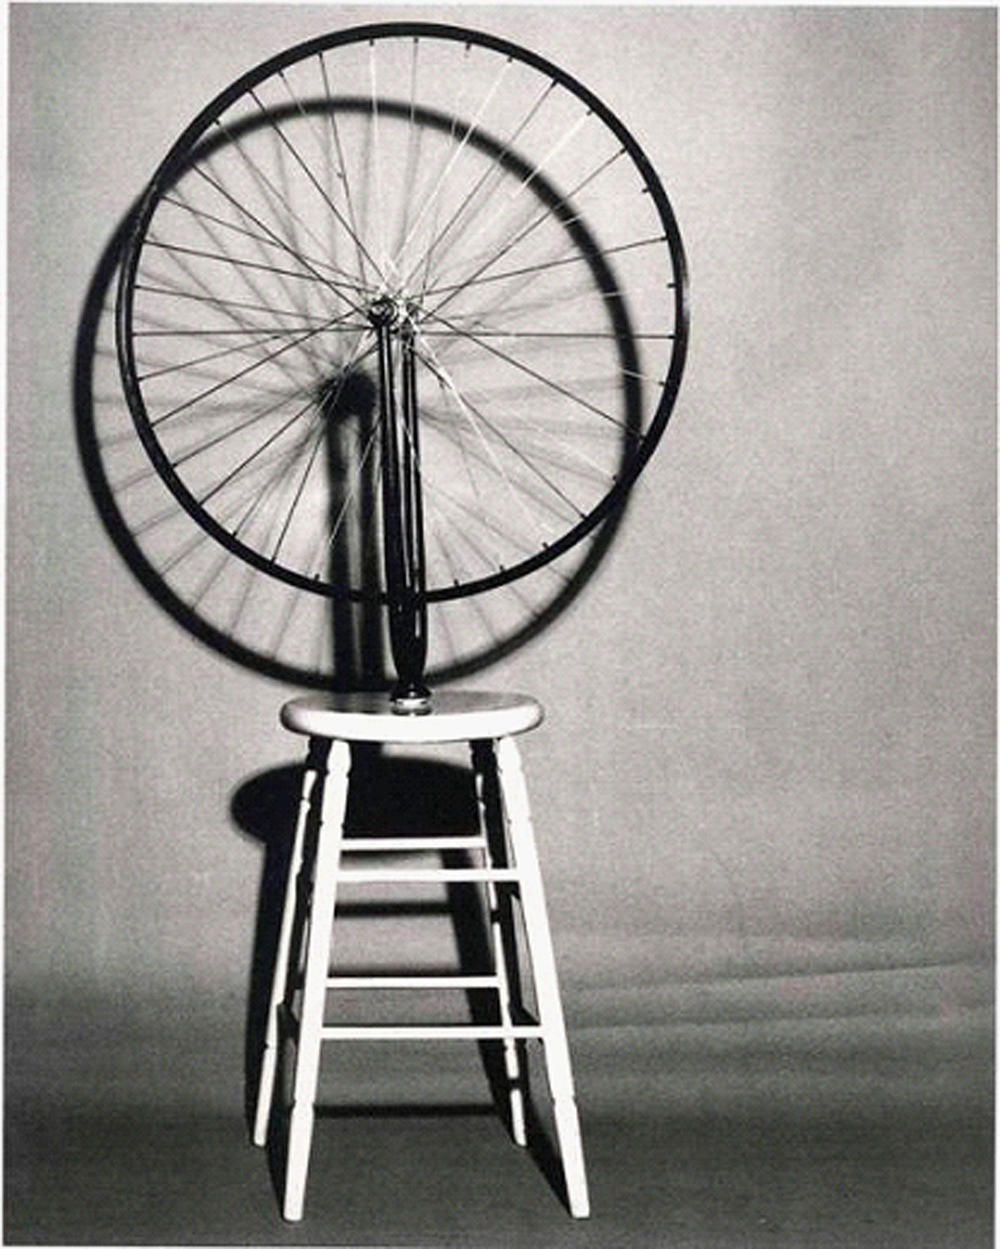 Marcel Duchamp, Bicycle Wheel, 1912.